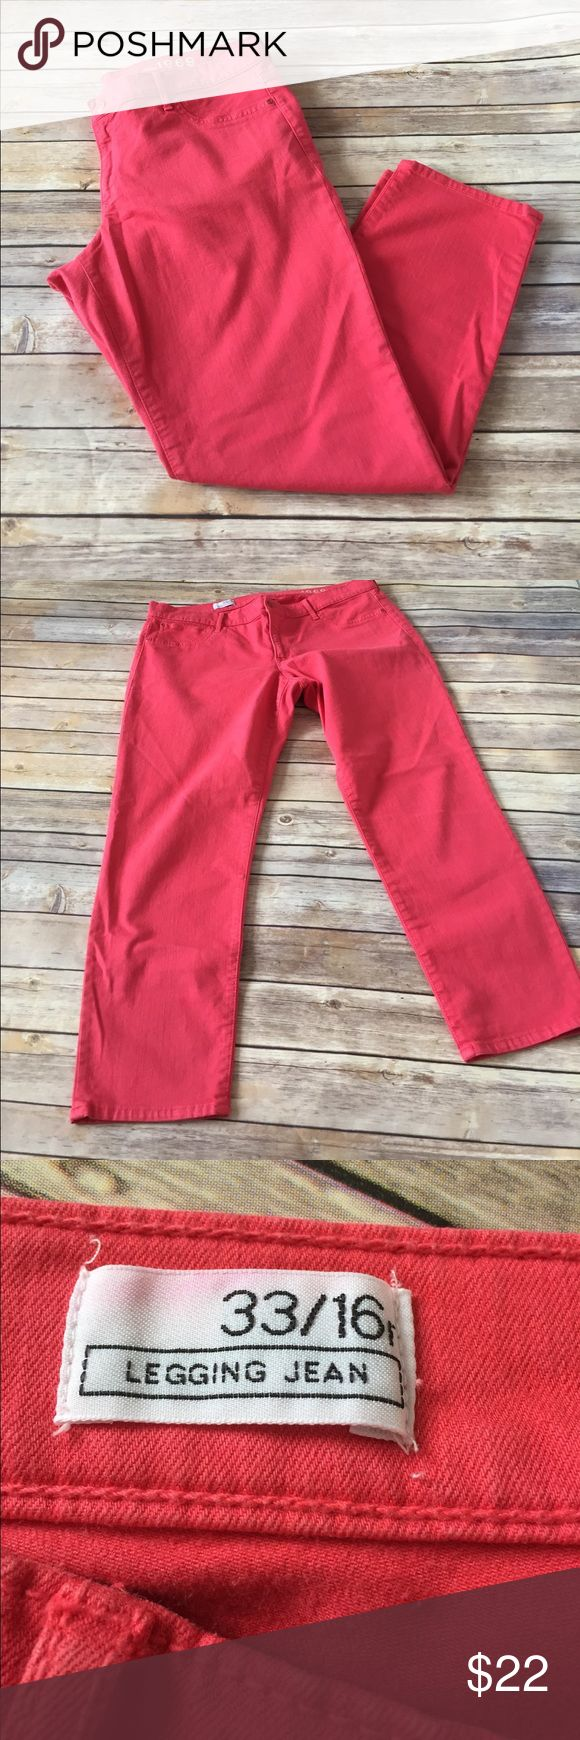 "Gap legging jeans Gap legging jeans. Inseam 26"". Like a salmon color. GAP Jeans Skinny"